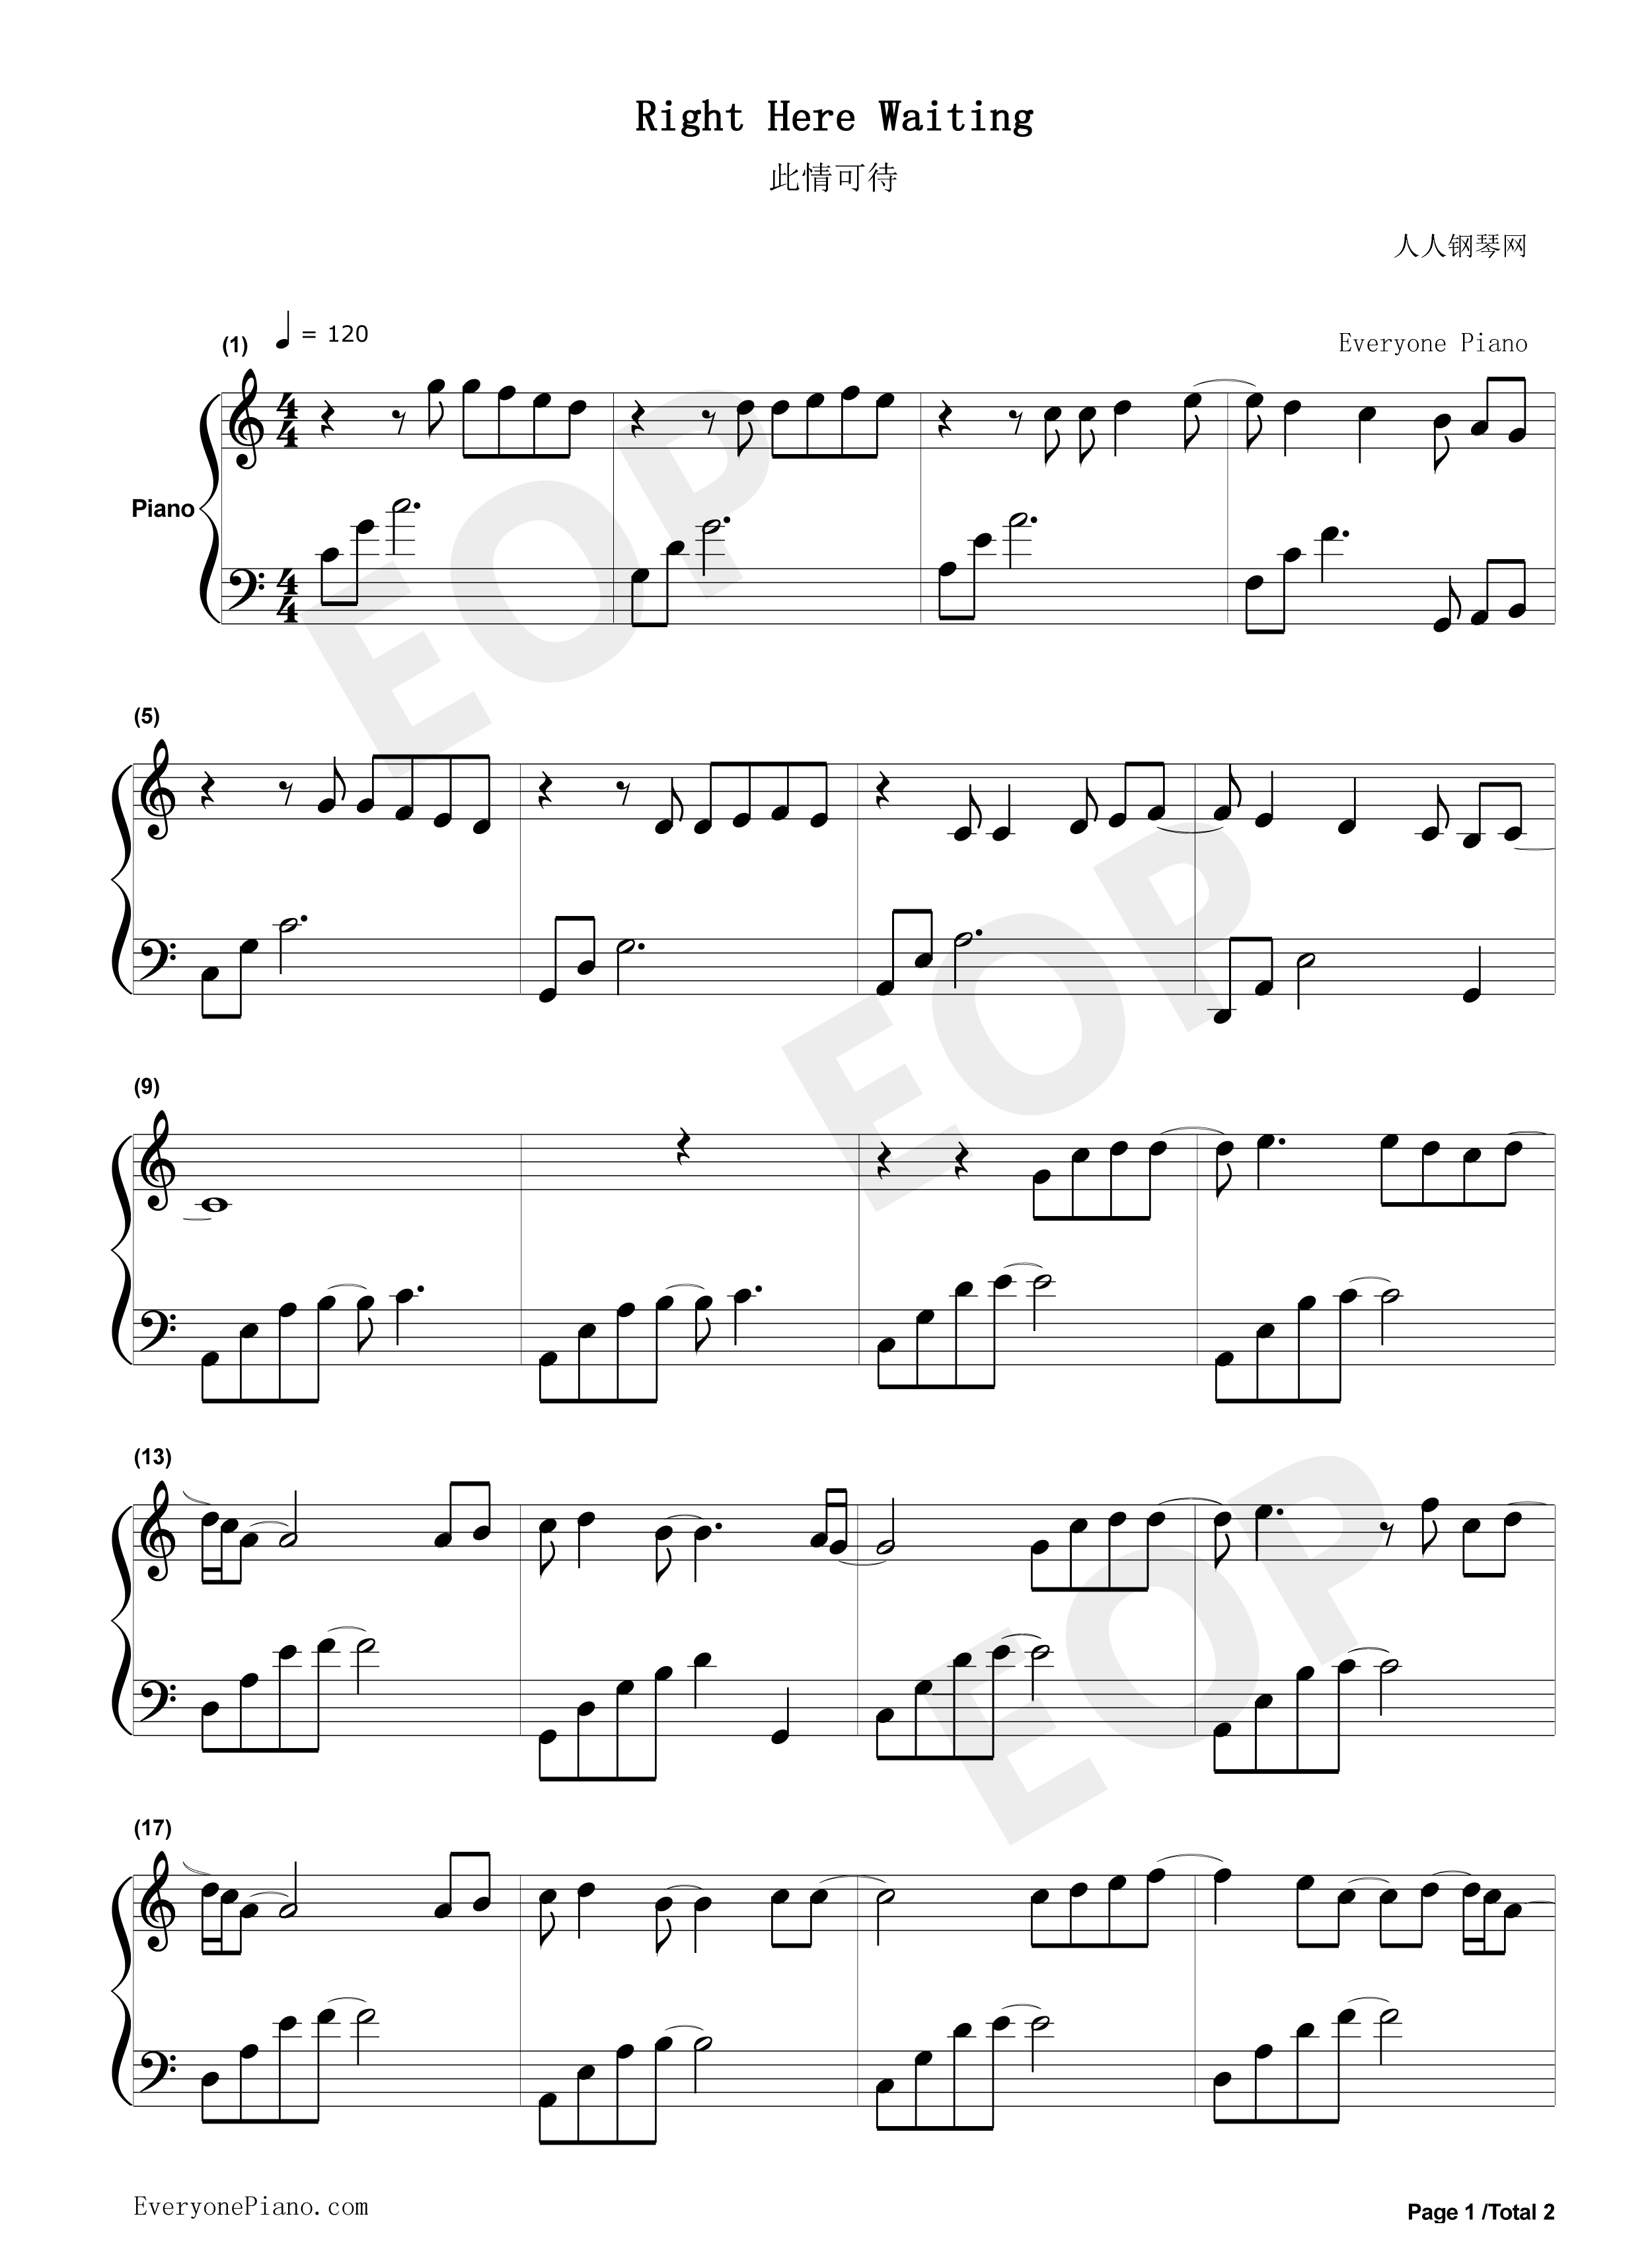 ... Here Waiting Stave Preview 1-Free Piano Sheet Music & Piano Chords